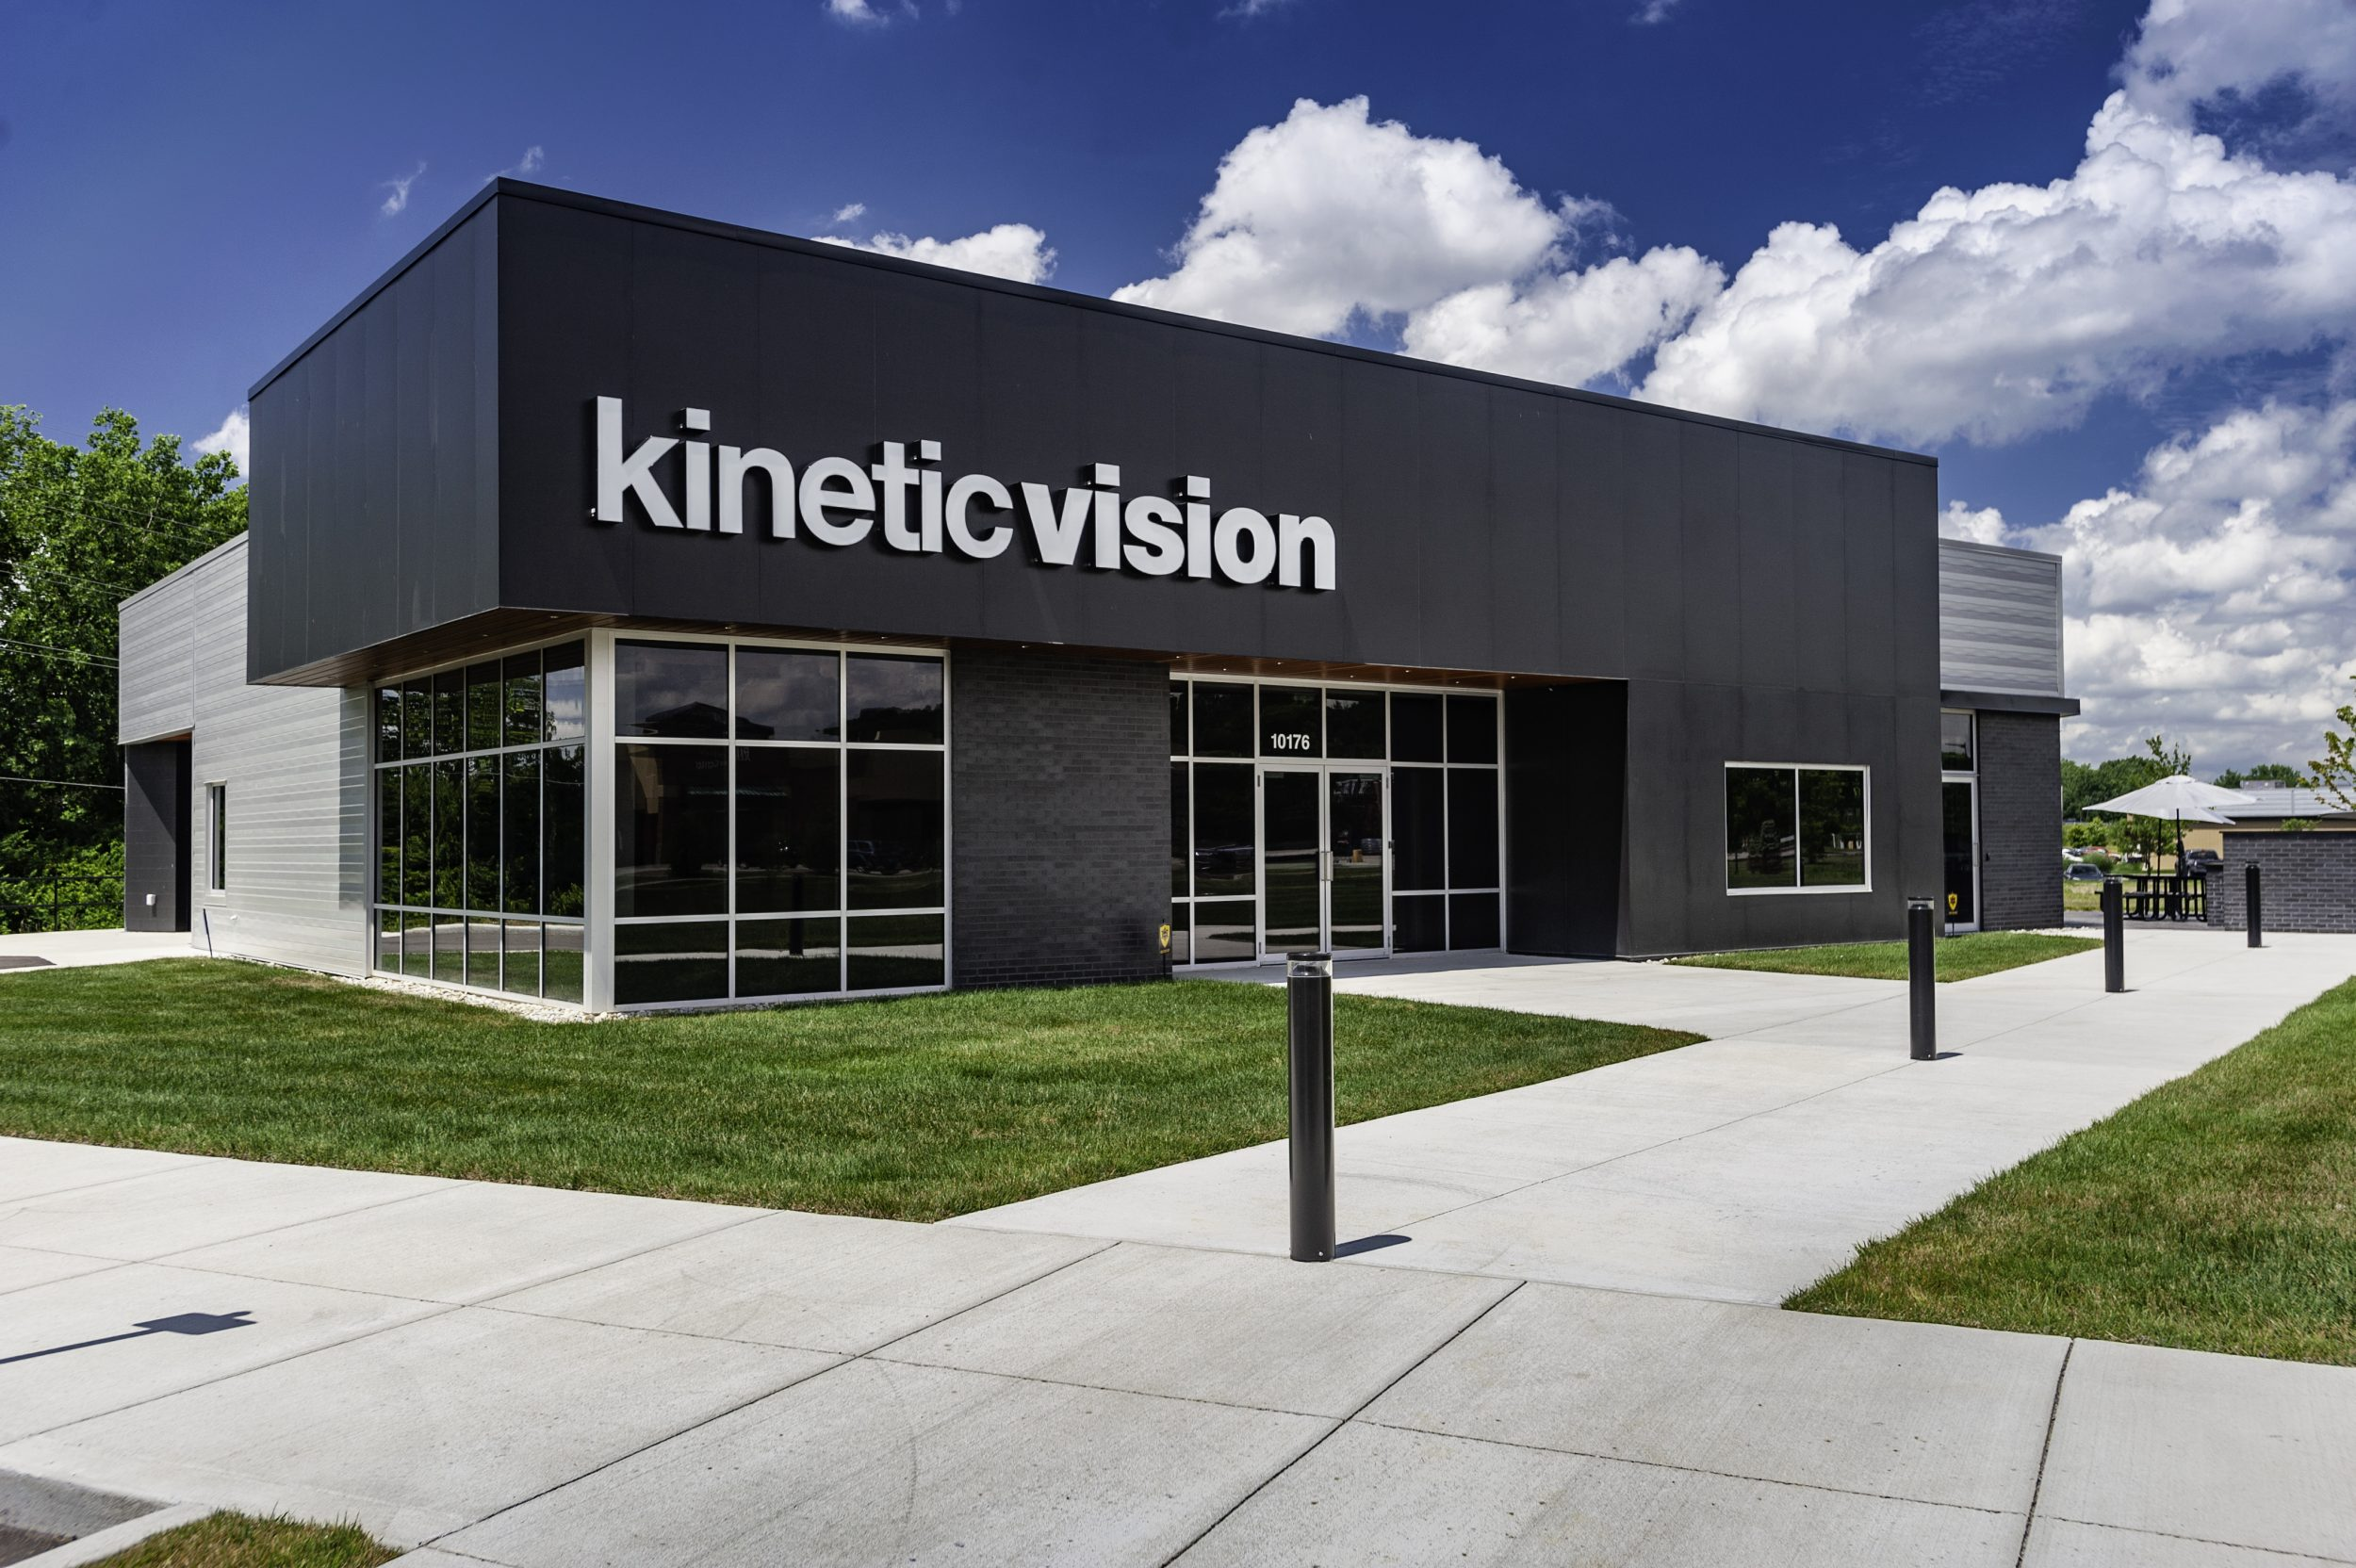 Project Image of Kinetic Vision